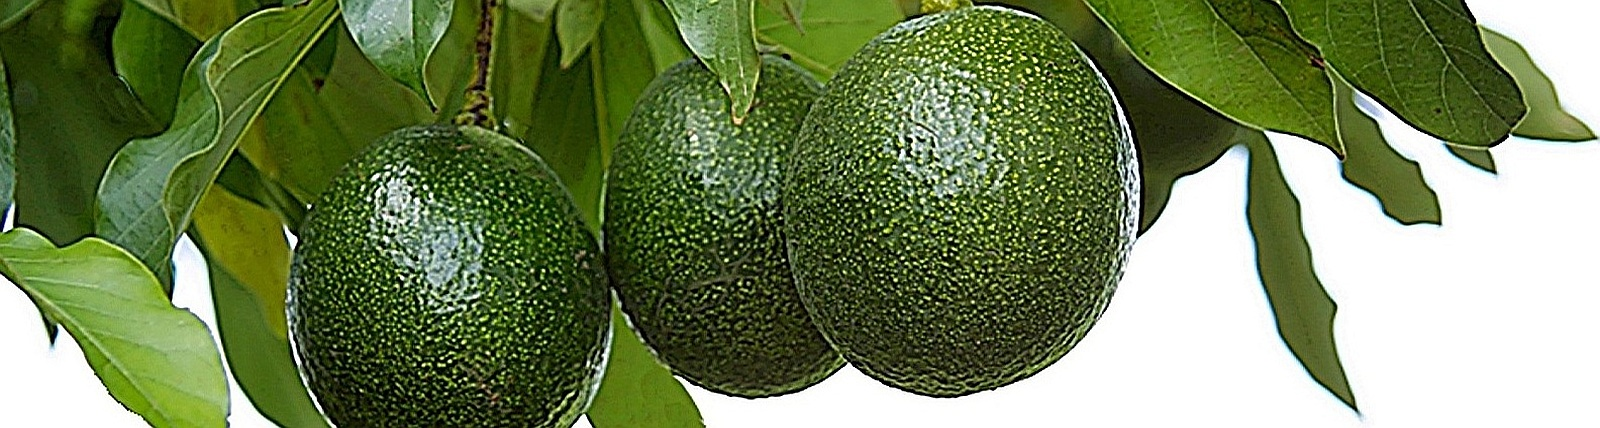 Aguacates 2